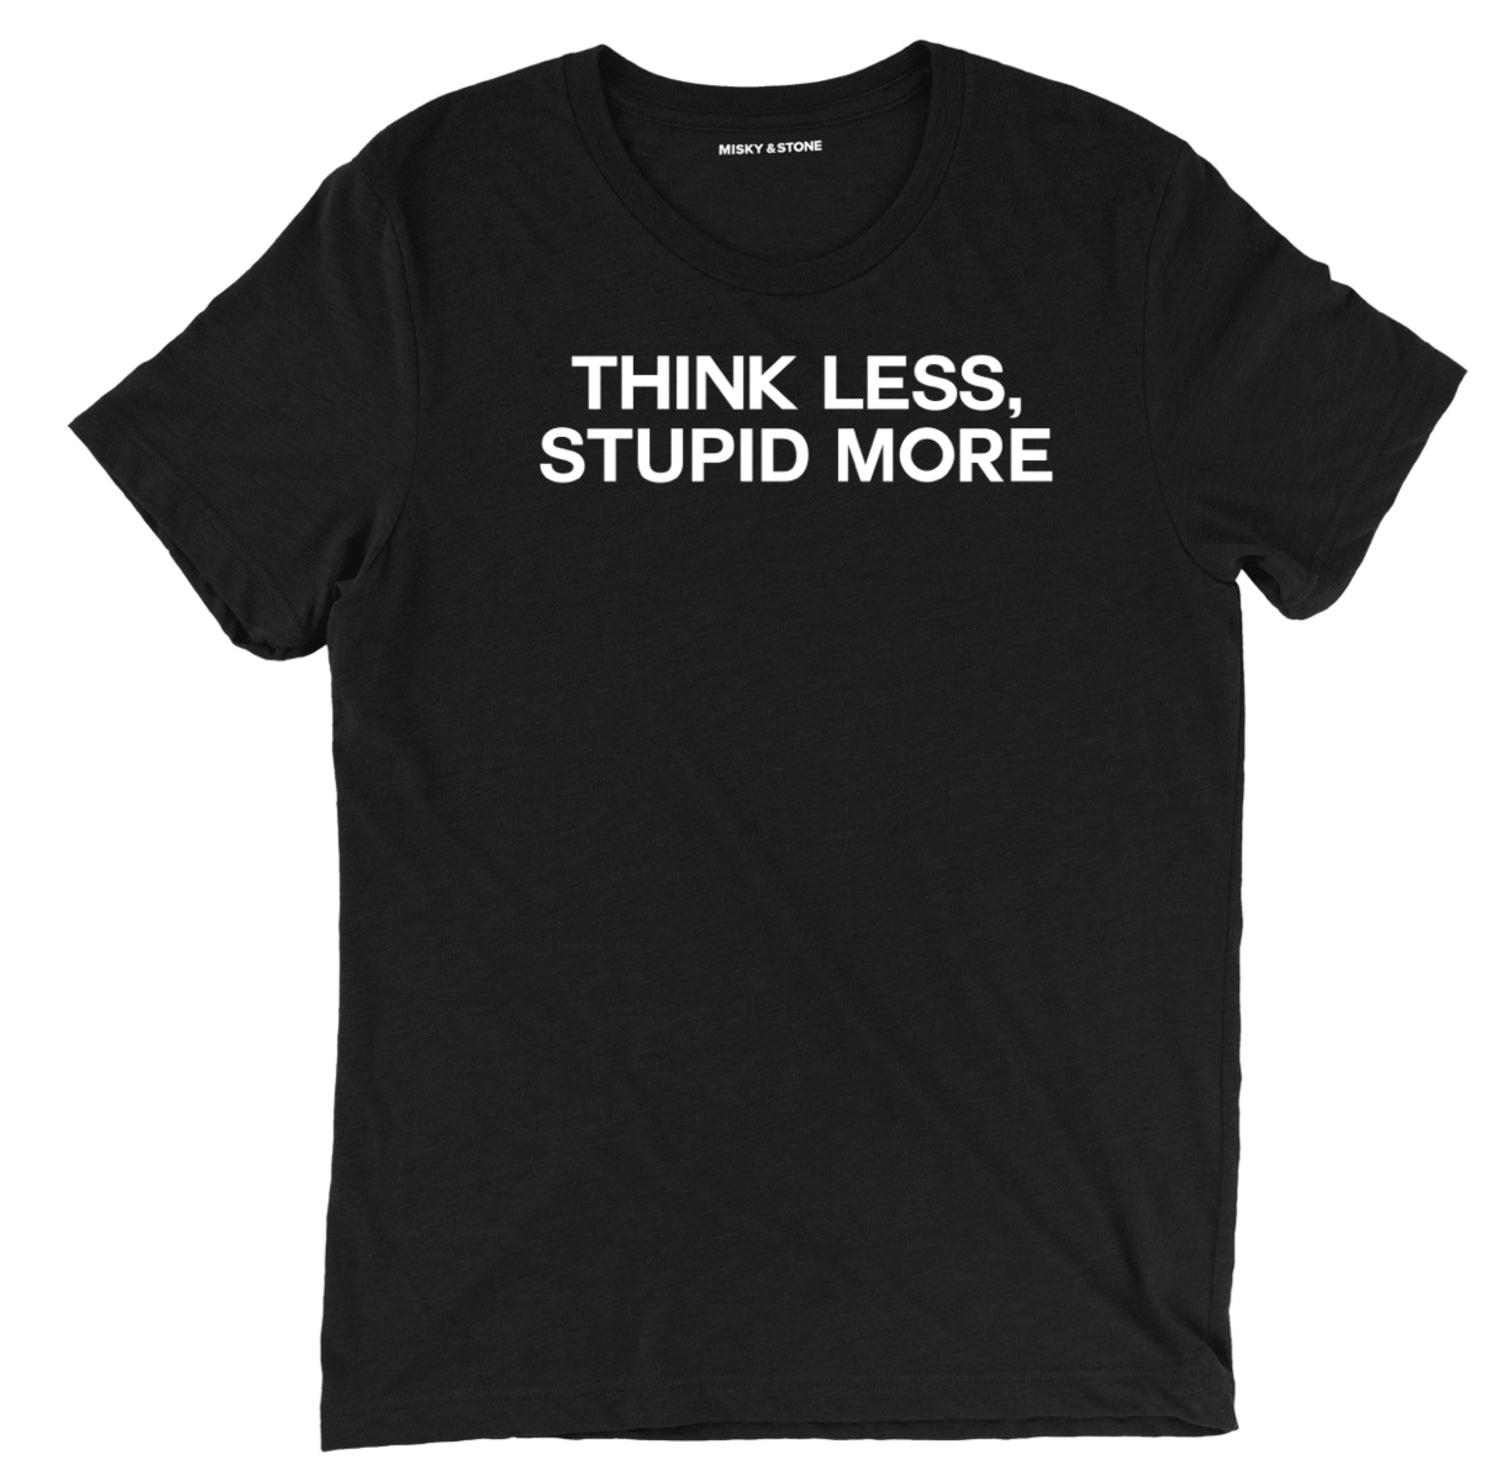 think less stupid more t shirt, funny think less t shirt, stupid more funny t shirt, sarcastic stupid t shirts, sarcastic shirts, sarcastic tee shirts, sarcastic tees, sarcastic t shirt sayings, sarcastic t shirts quotes, funny sarcastic t shirts,